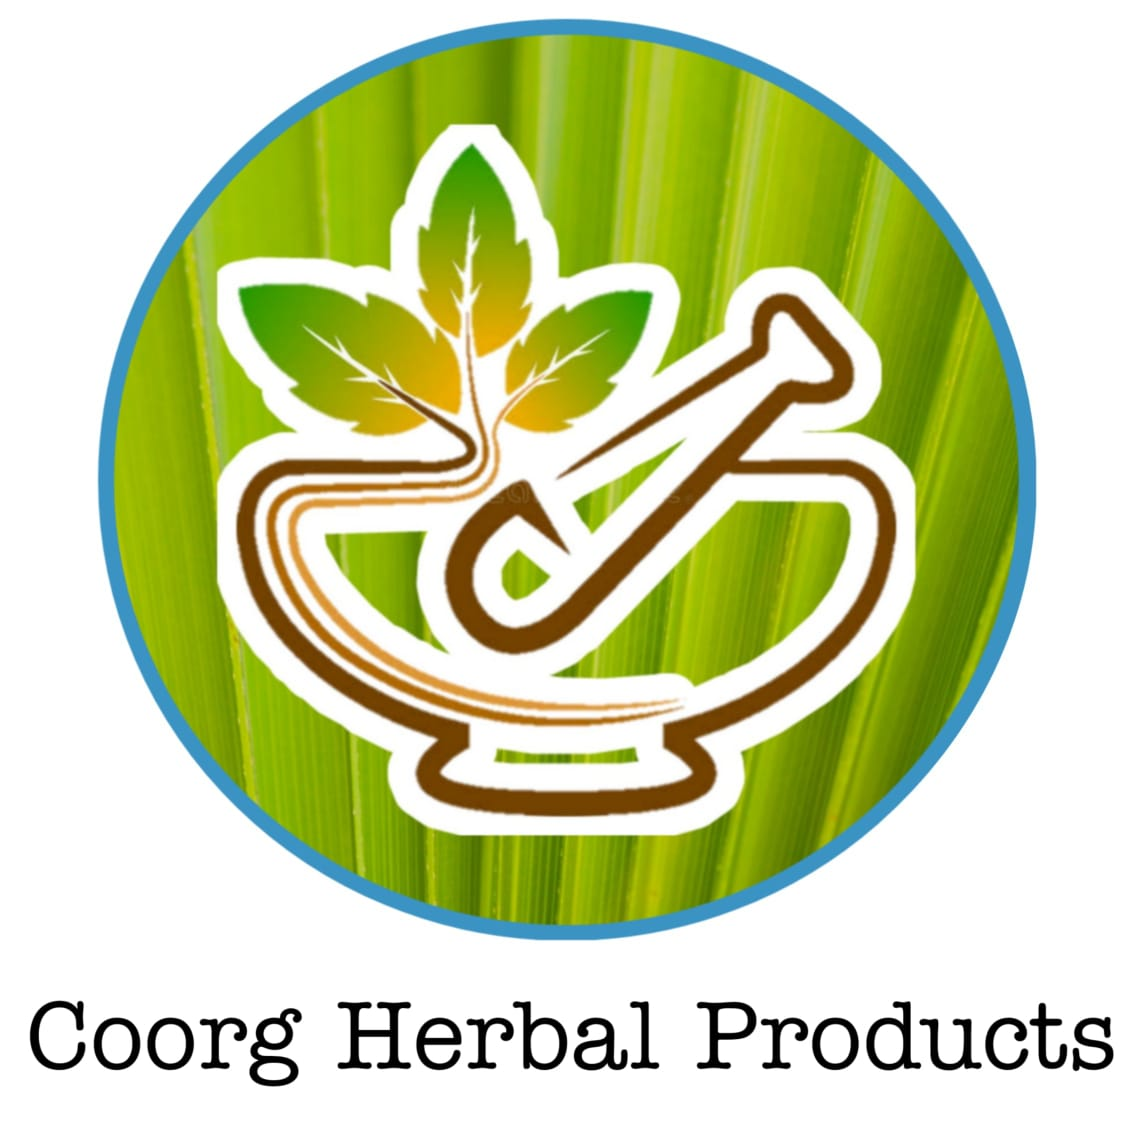 Coorg Herbal Products